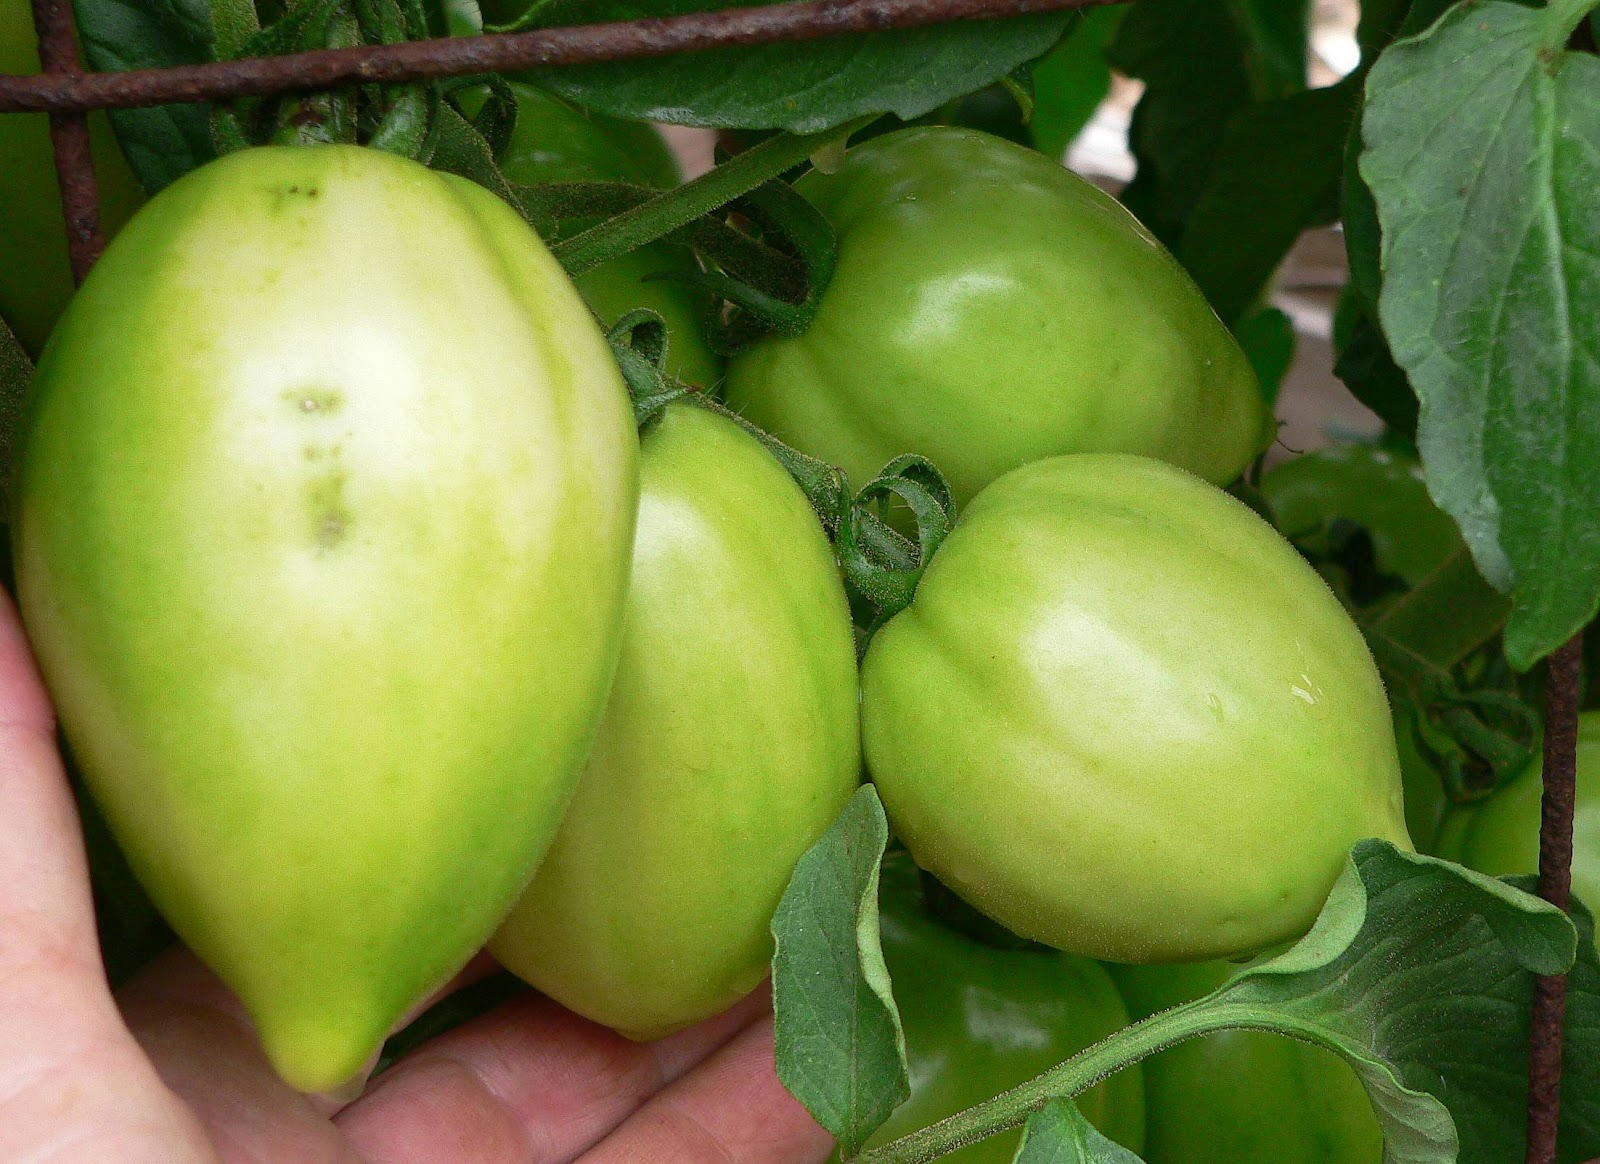 Mama Hybrid We Have Fallen In Love With Her It Is A Roma Are Not Of Tomatoes To Us Their Texture Mushy And Flavor Inferior